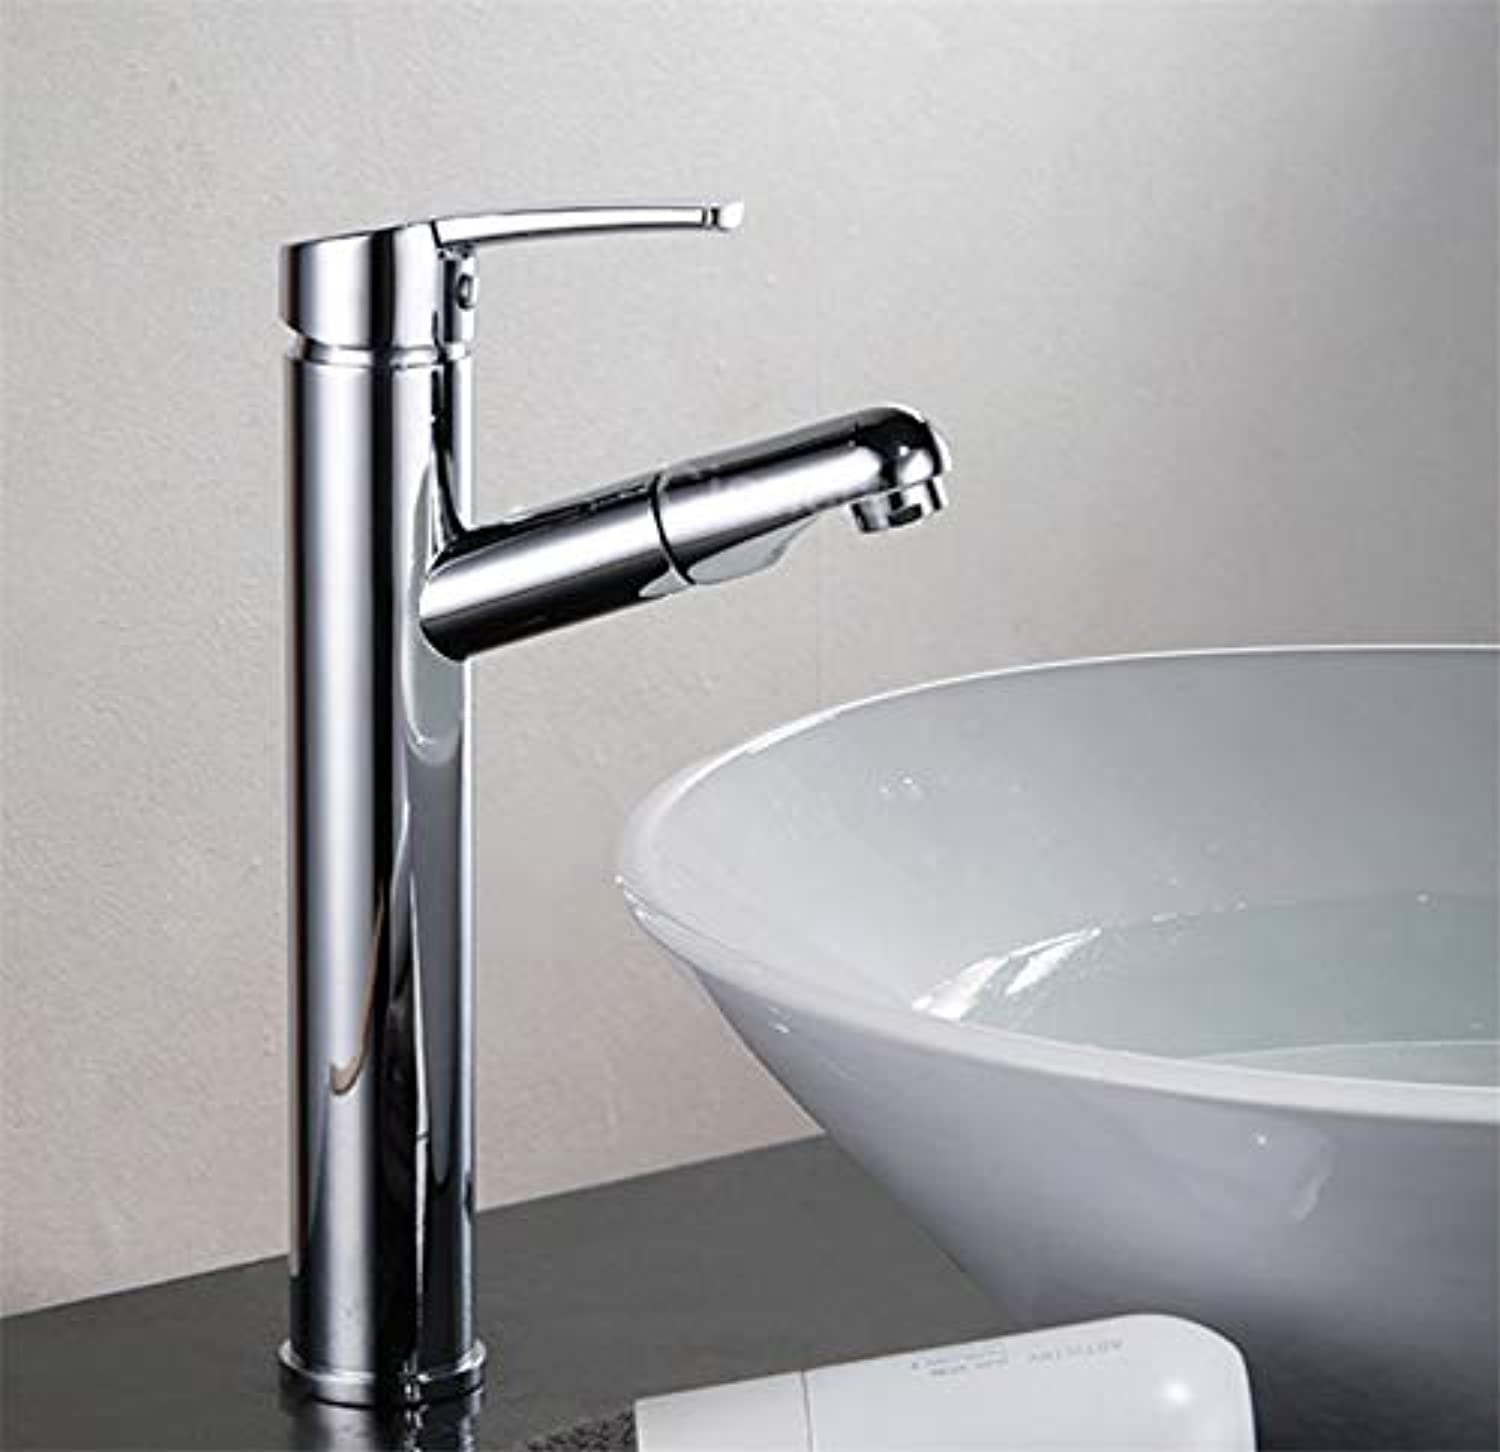 JONTON Faucet faucet faucet, pull-type hot and cold above ?counter basin ?high basin